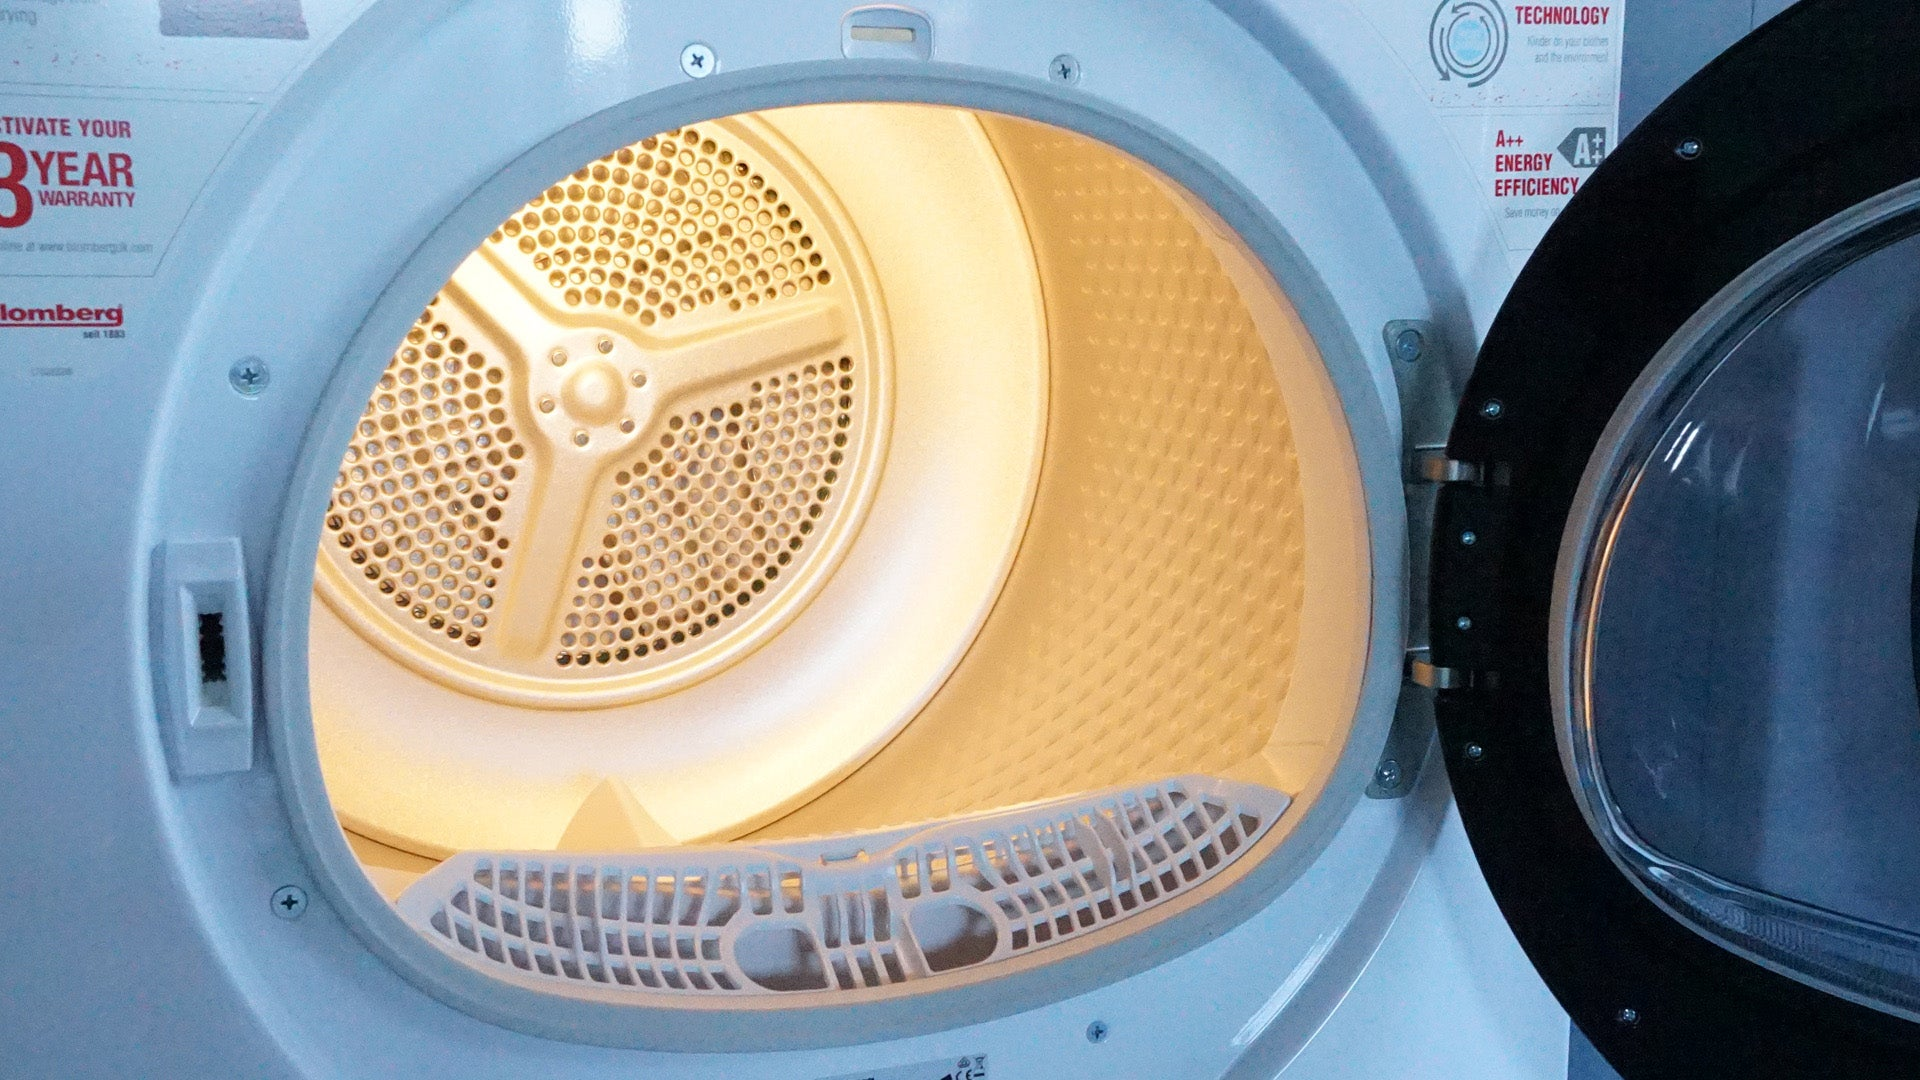 Keeping Your Dryer Healthy and Effective